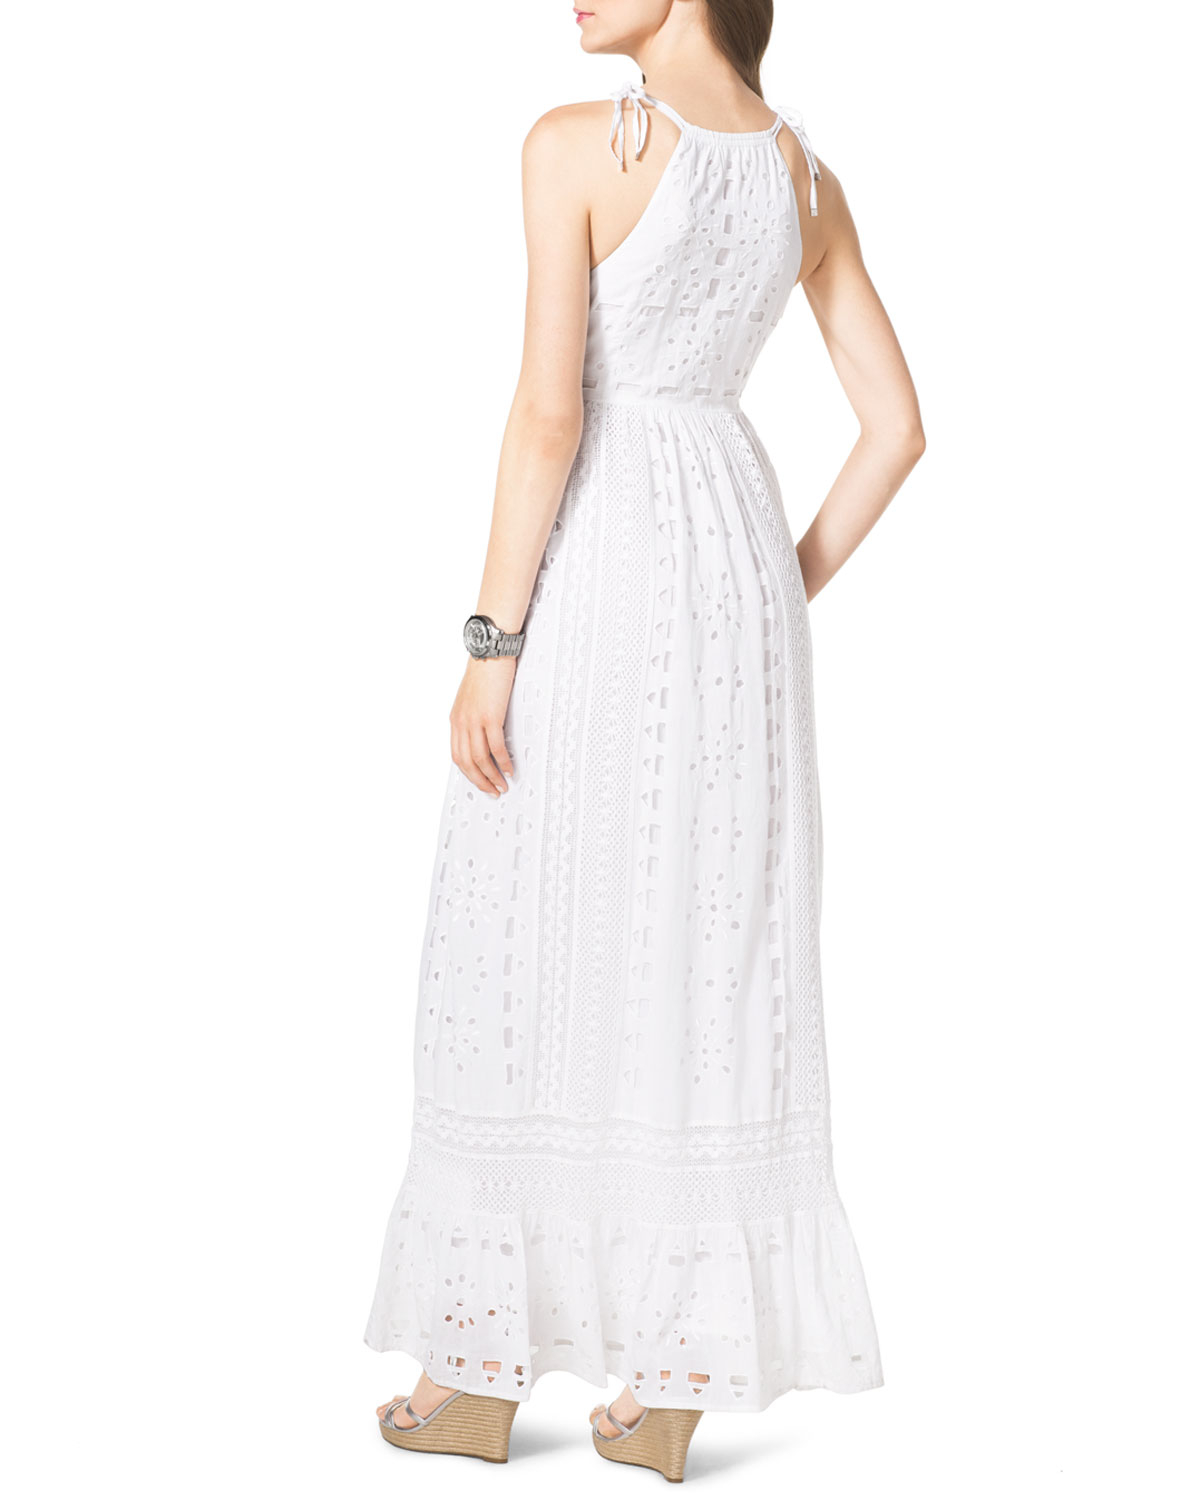 Michael michael kors Cotton Eyelet Maxi Dress in White | Lyst